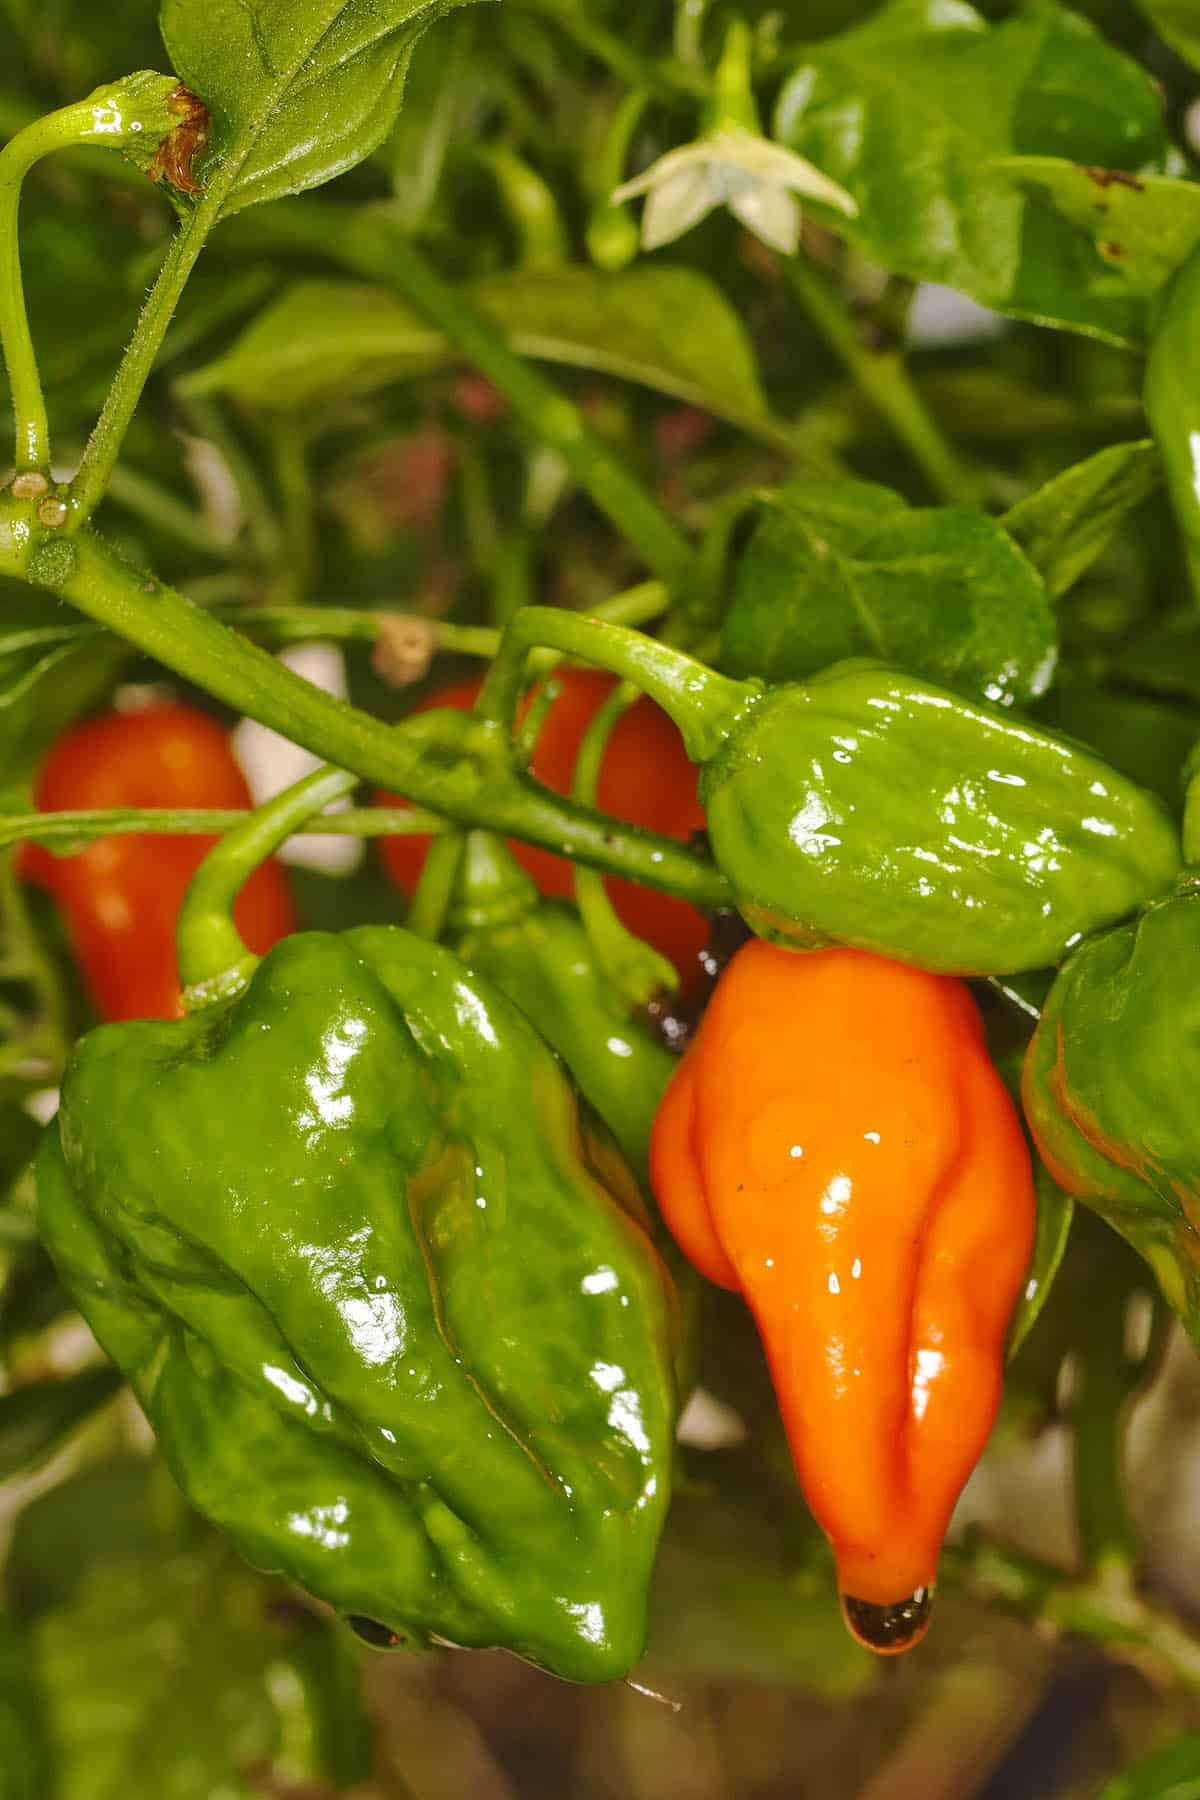 Naga Viper Chili Peppers